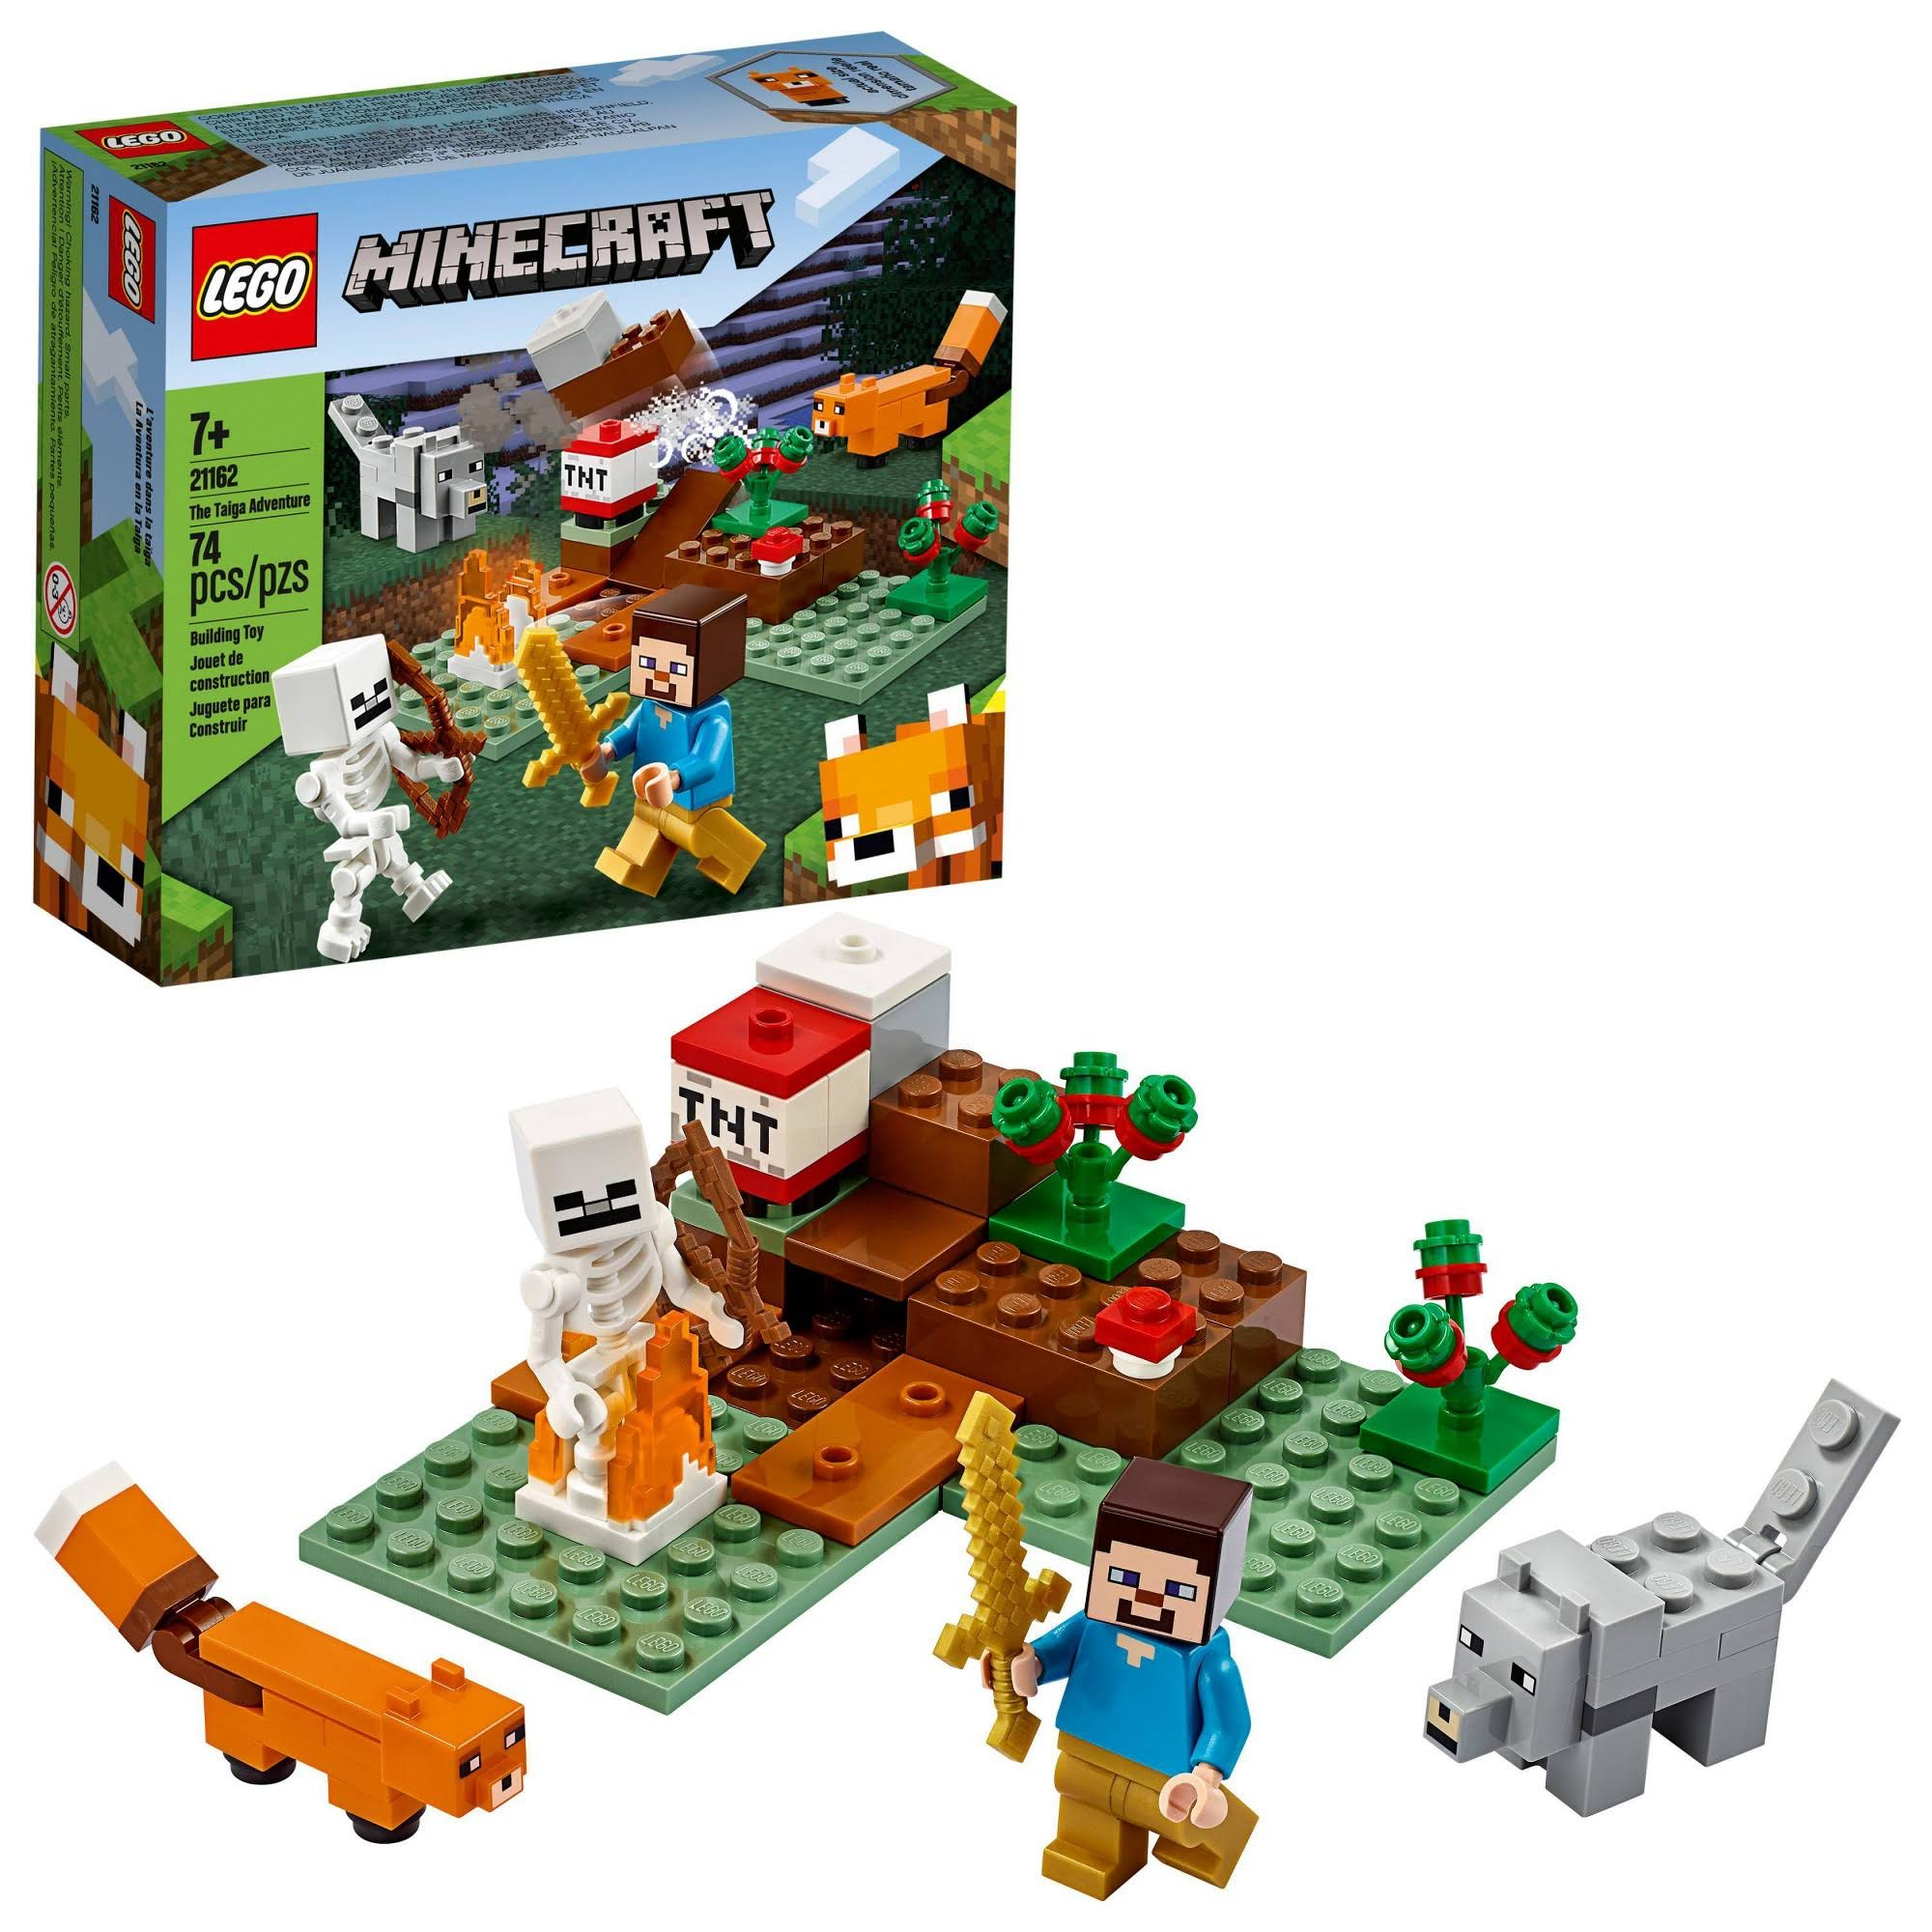 Lego Minecraft - The Taiga Adventure 21162